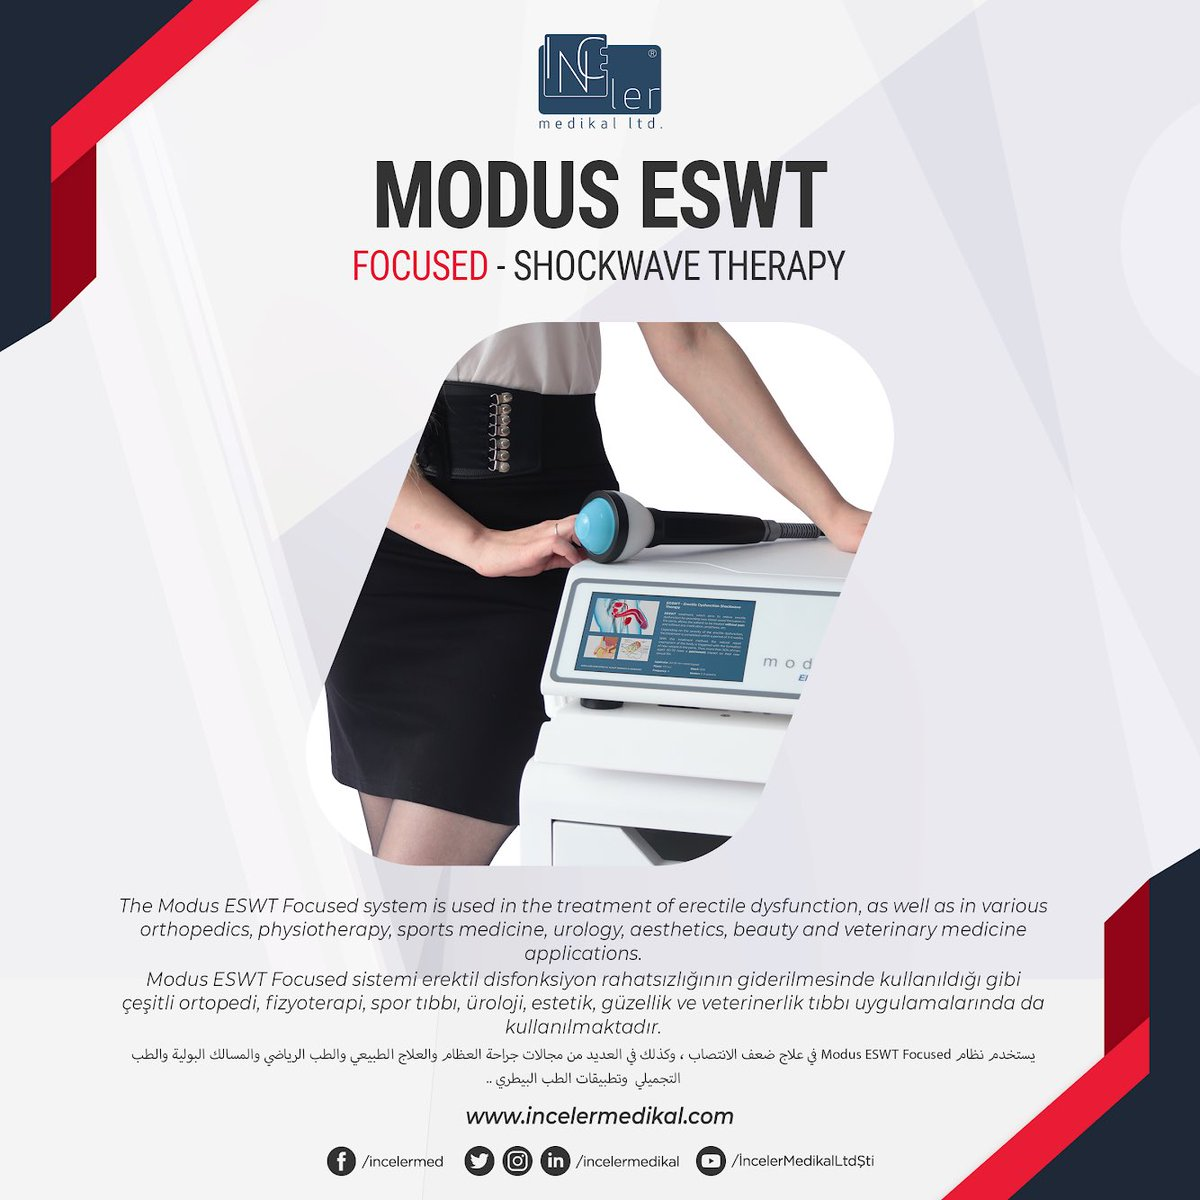 The Modus ESWT Focused system is used in the treatment of erectile dysfunction, as well as in various orthopedics, physiotherapy, sports medicine, urology, aesthetics, beauty and veterinary medicine applications.  #shockwavetherapy #urology #üroloji #erectiledysfunctionpic.twitter.com/IgPjE5t1J5